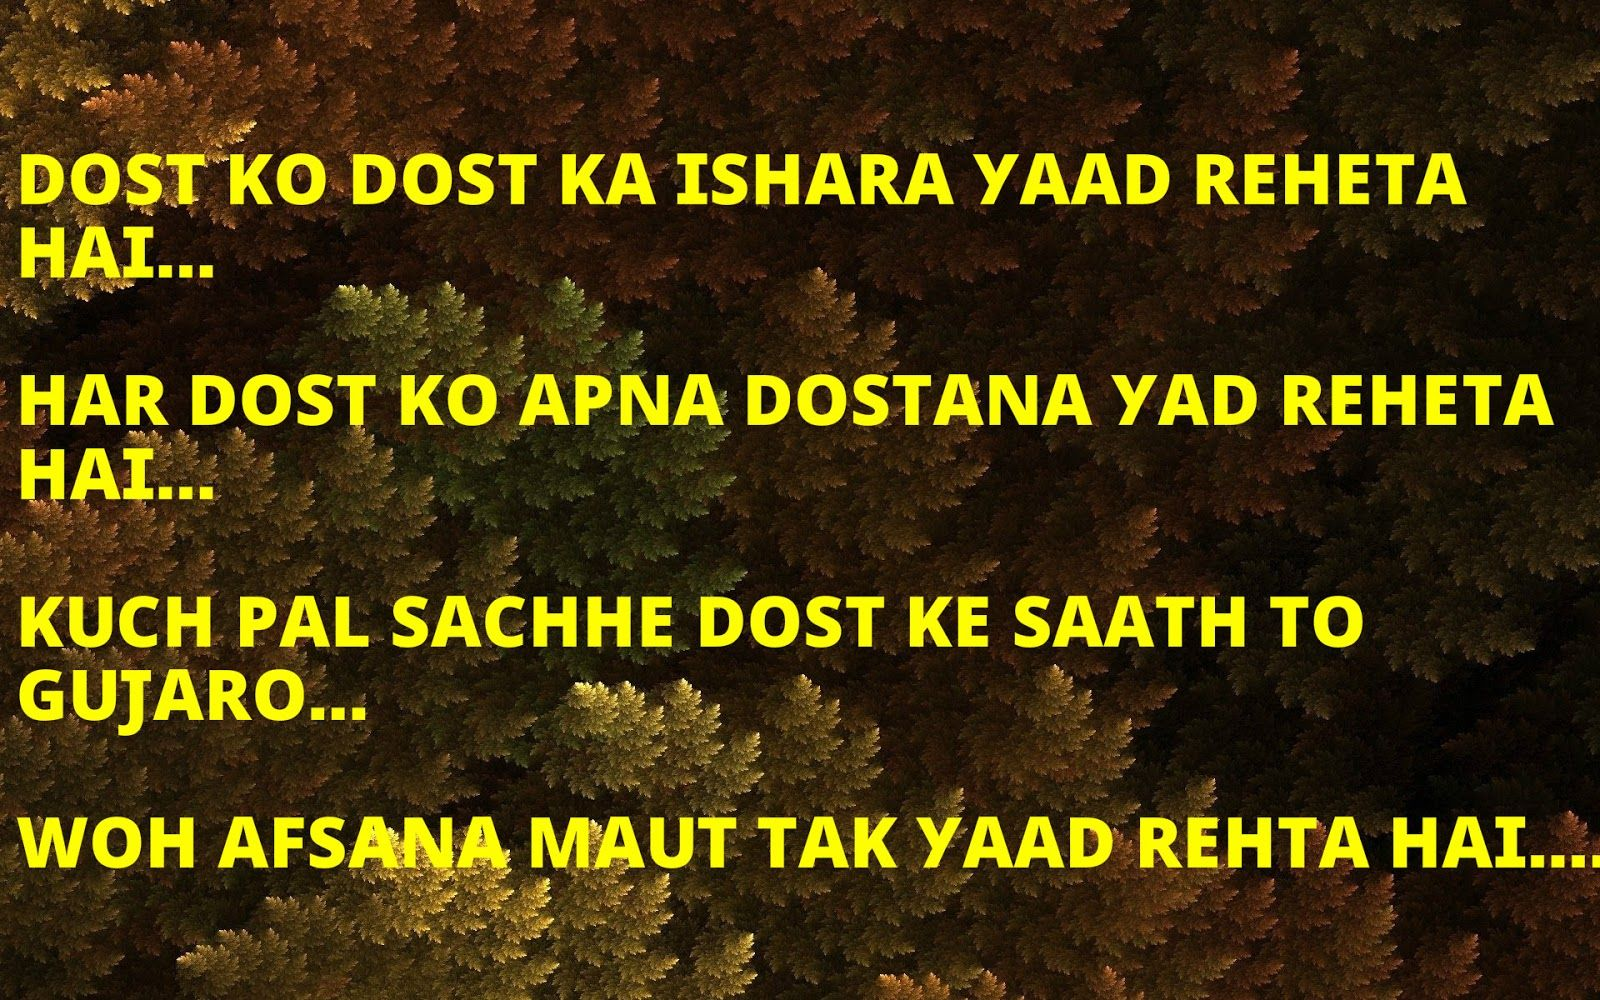 New Quotes On Love Life And Friendship In Hindi With: Hindi Shayari,Love Shayari Images,Sad Shayari Wallpapers